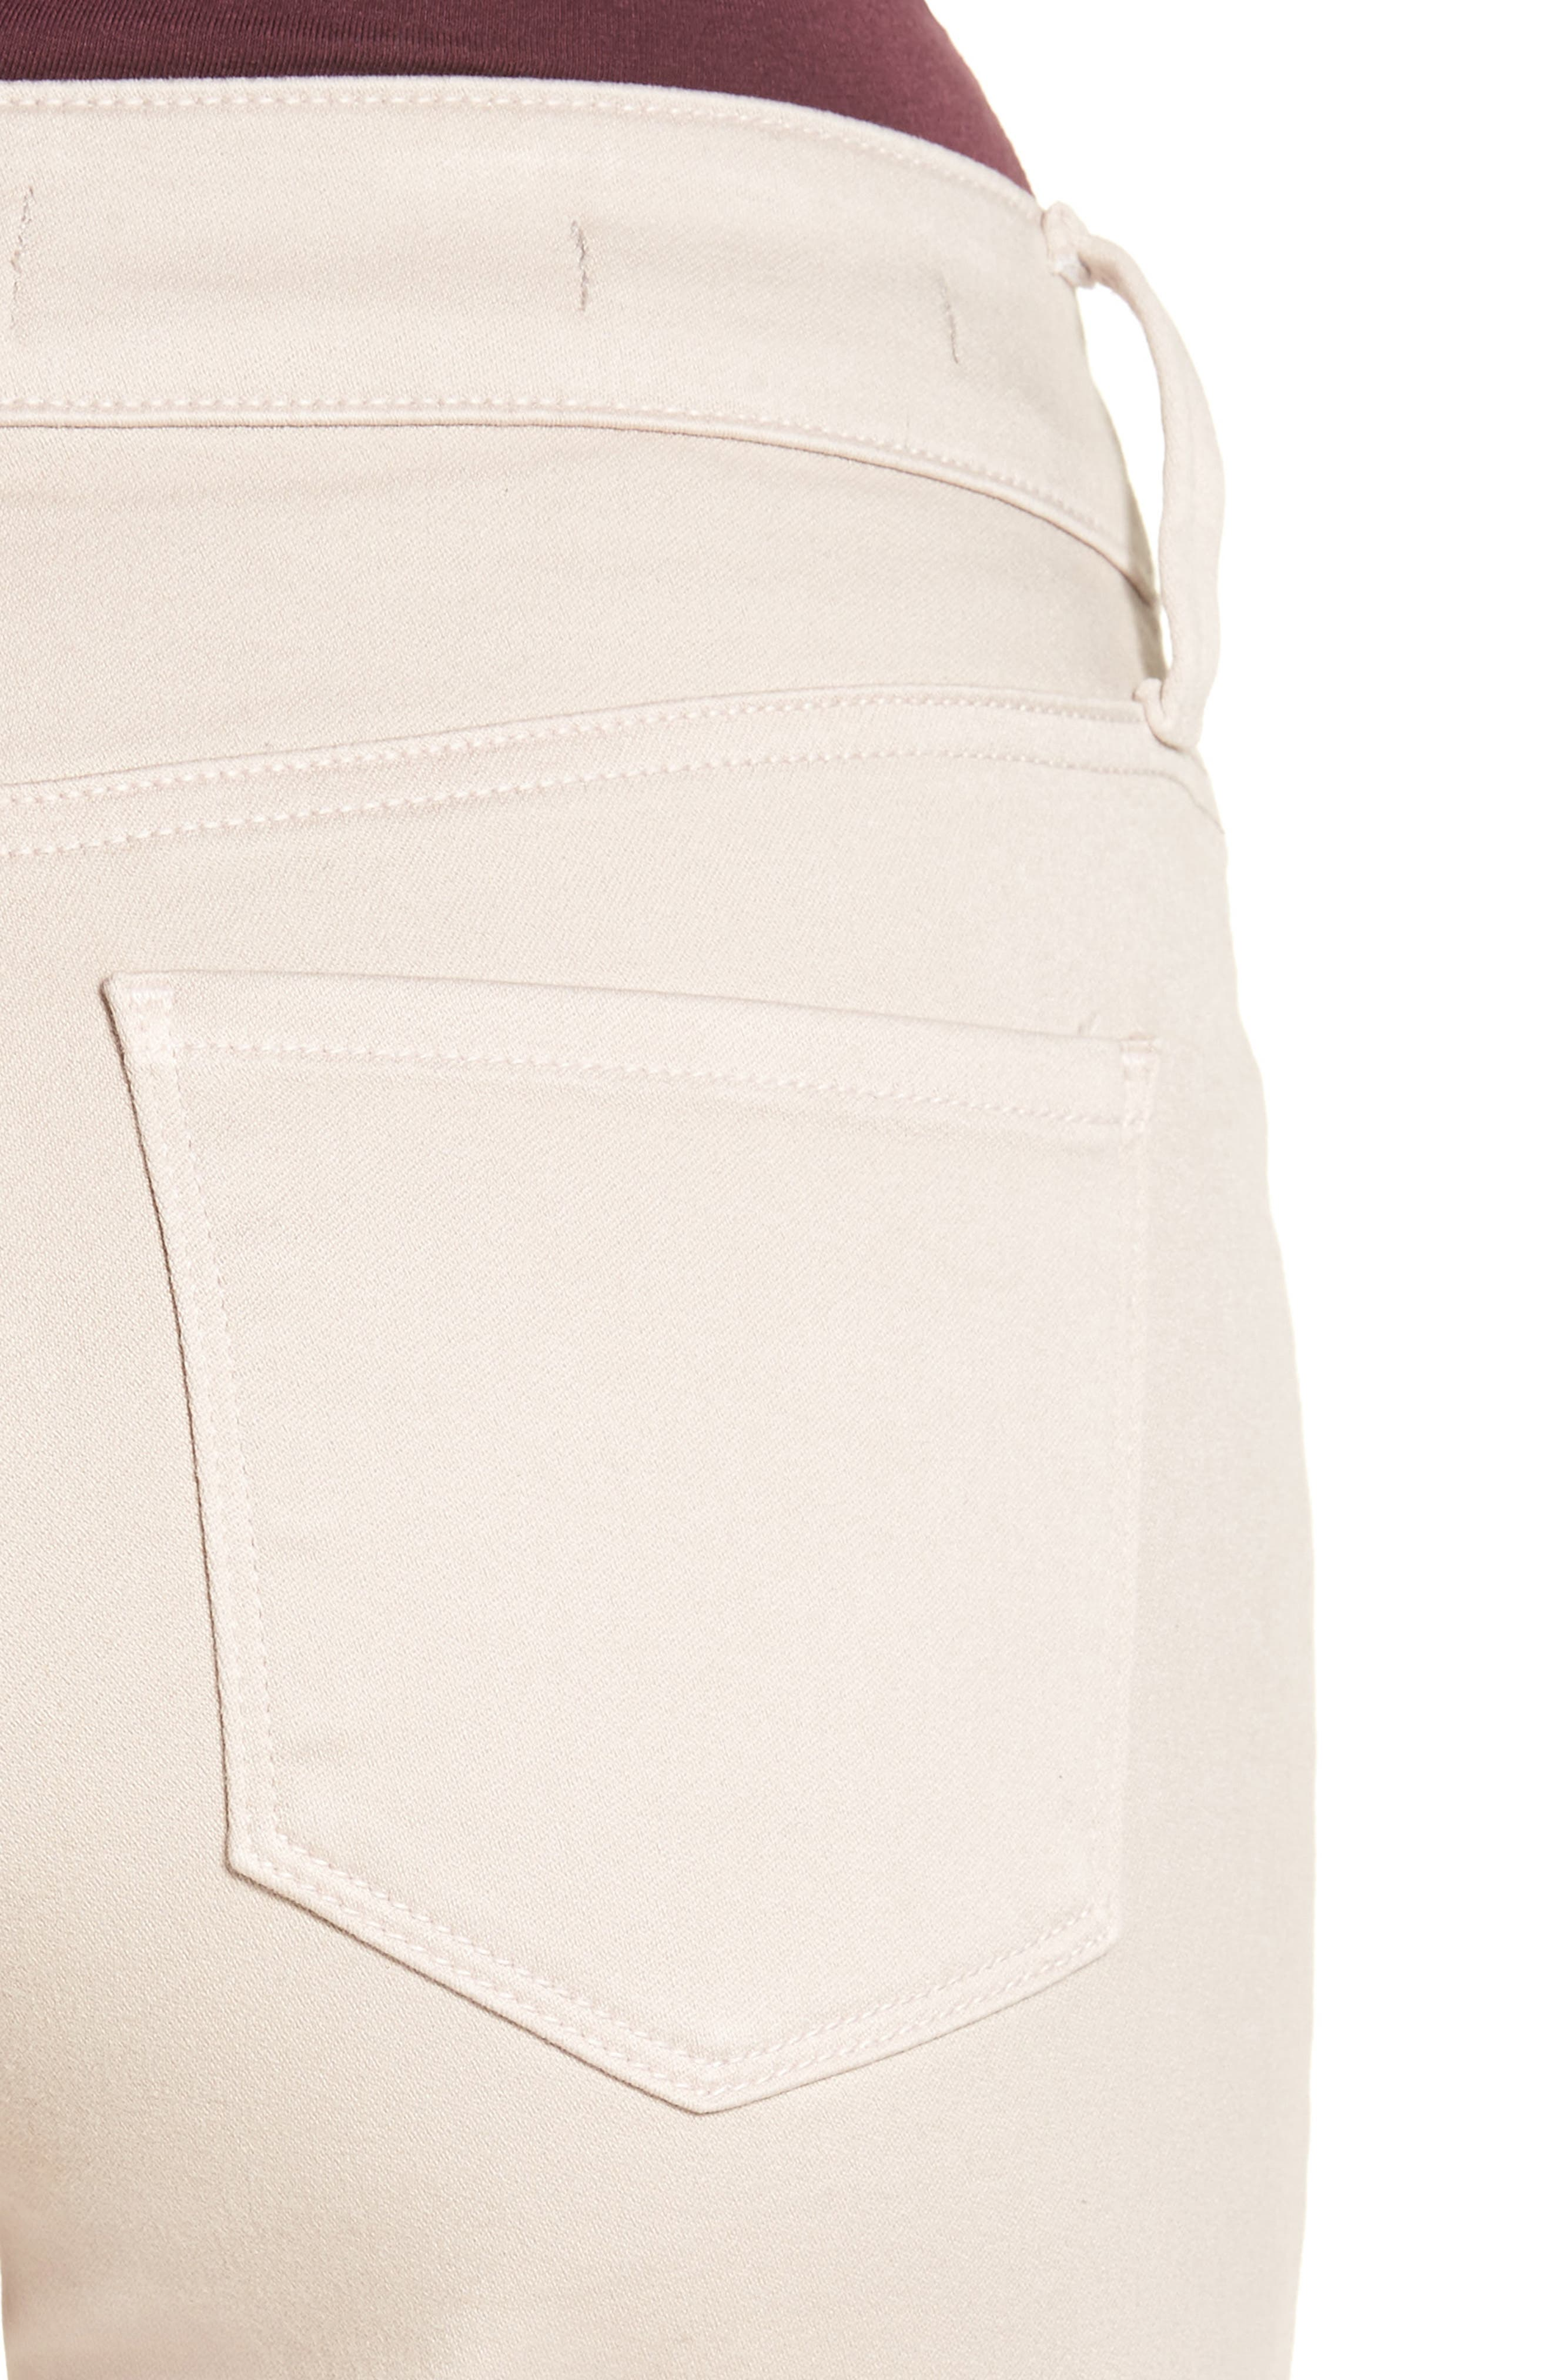 'Sheri' Stretch Twill Slim Leg Pants,                             Alternate thumbnail 11, color,